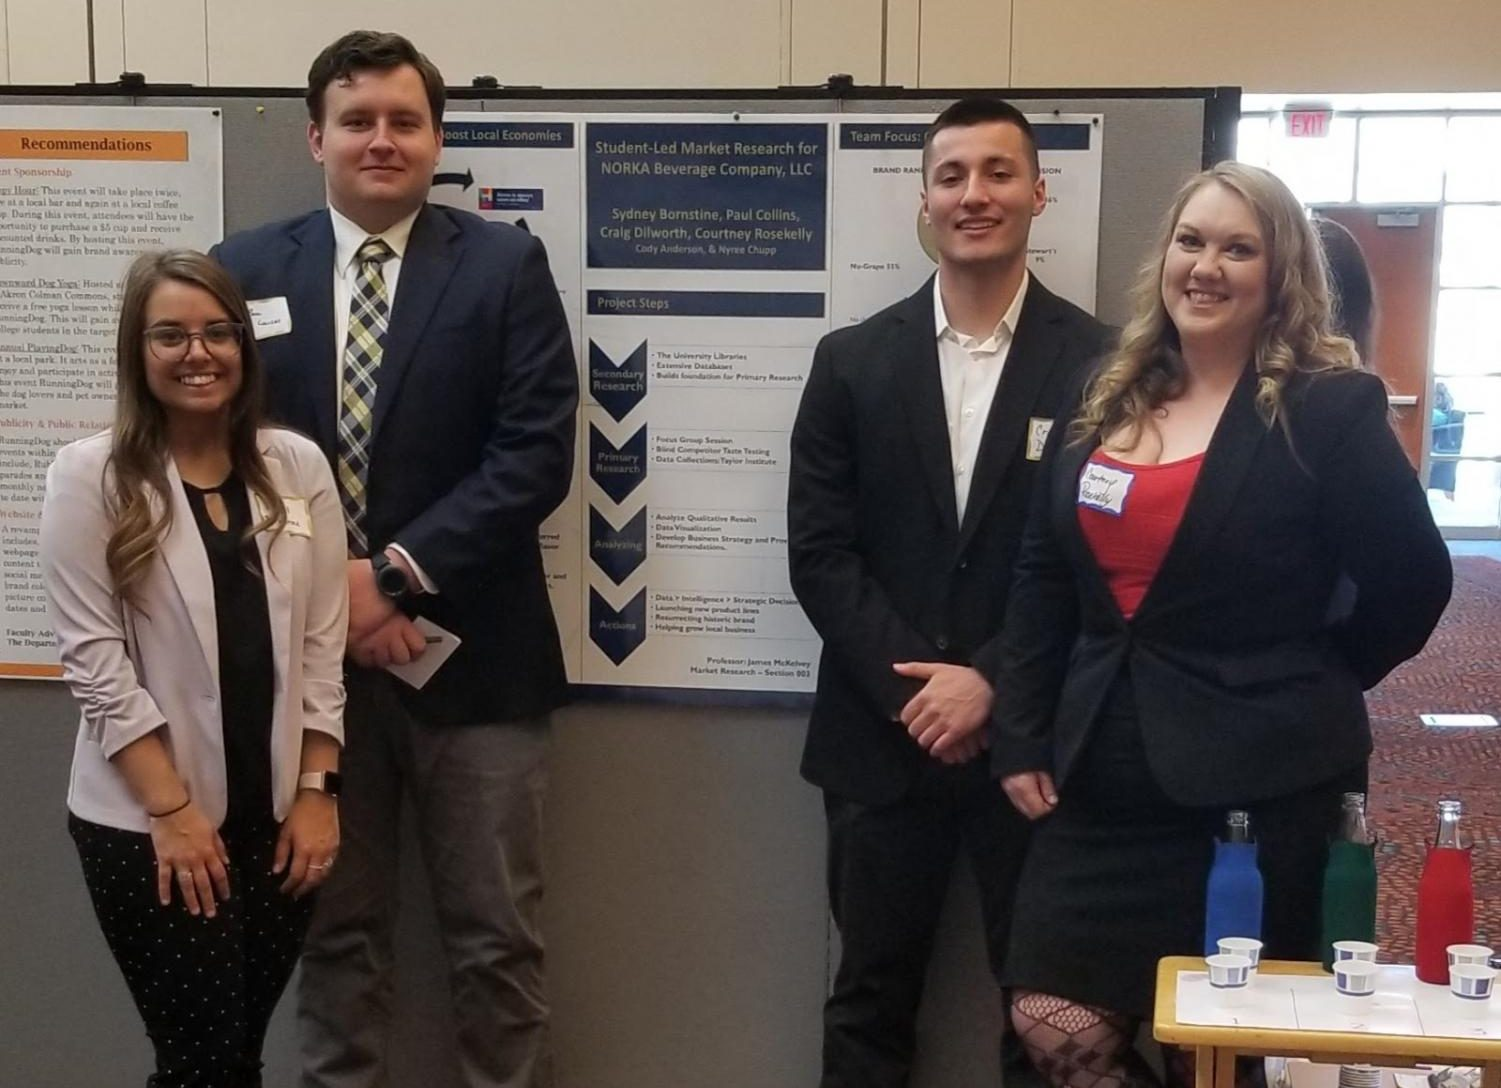 Cortney Rosekelly, Paul Collins, Craig Dilworth and Sydney Bornstine share the market research they conducted for NORKA Beverage Company, an Akron-based craft soda producer.